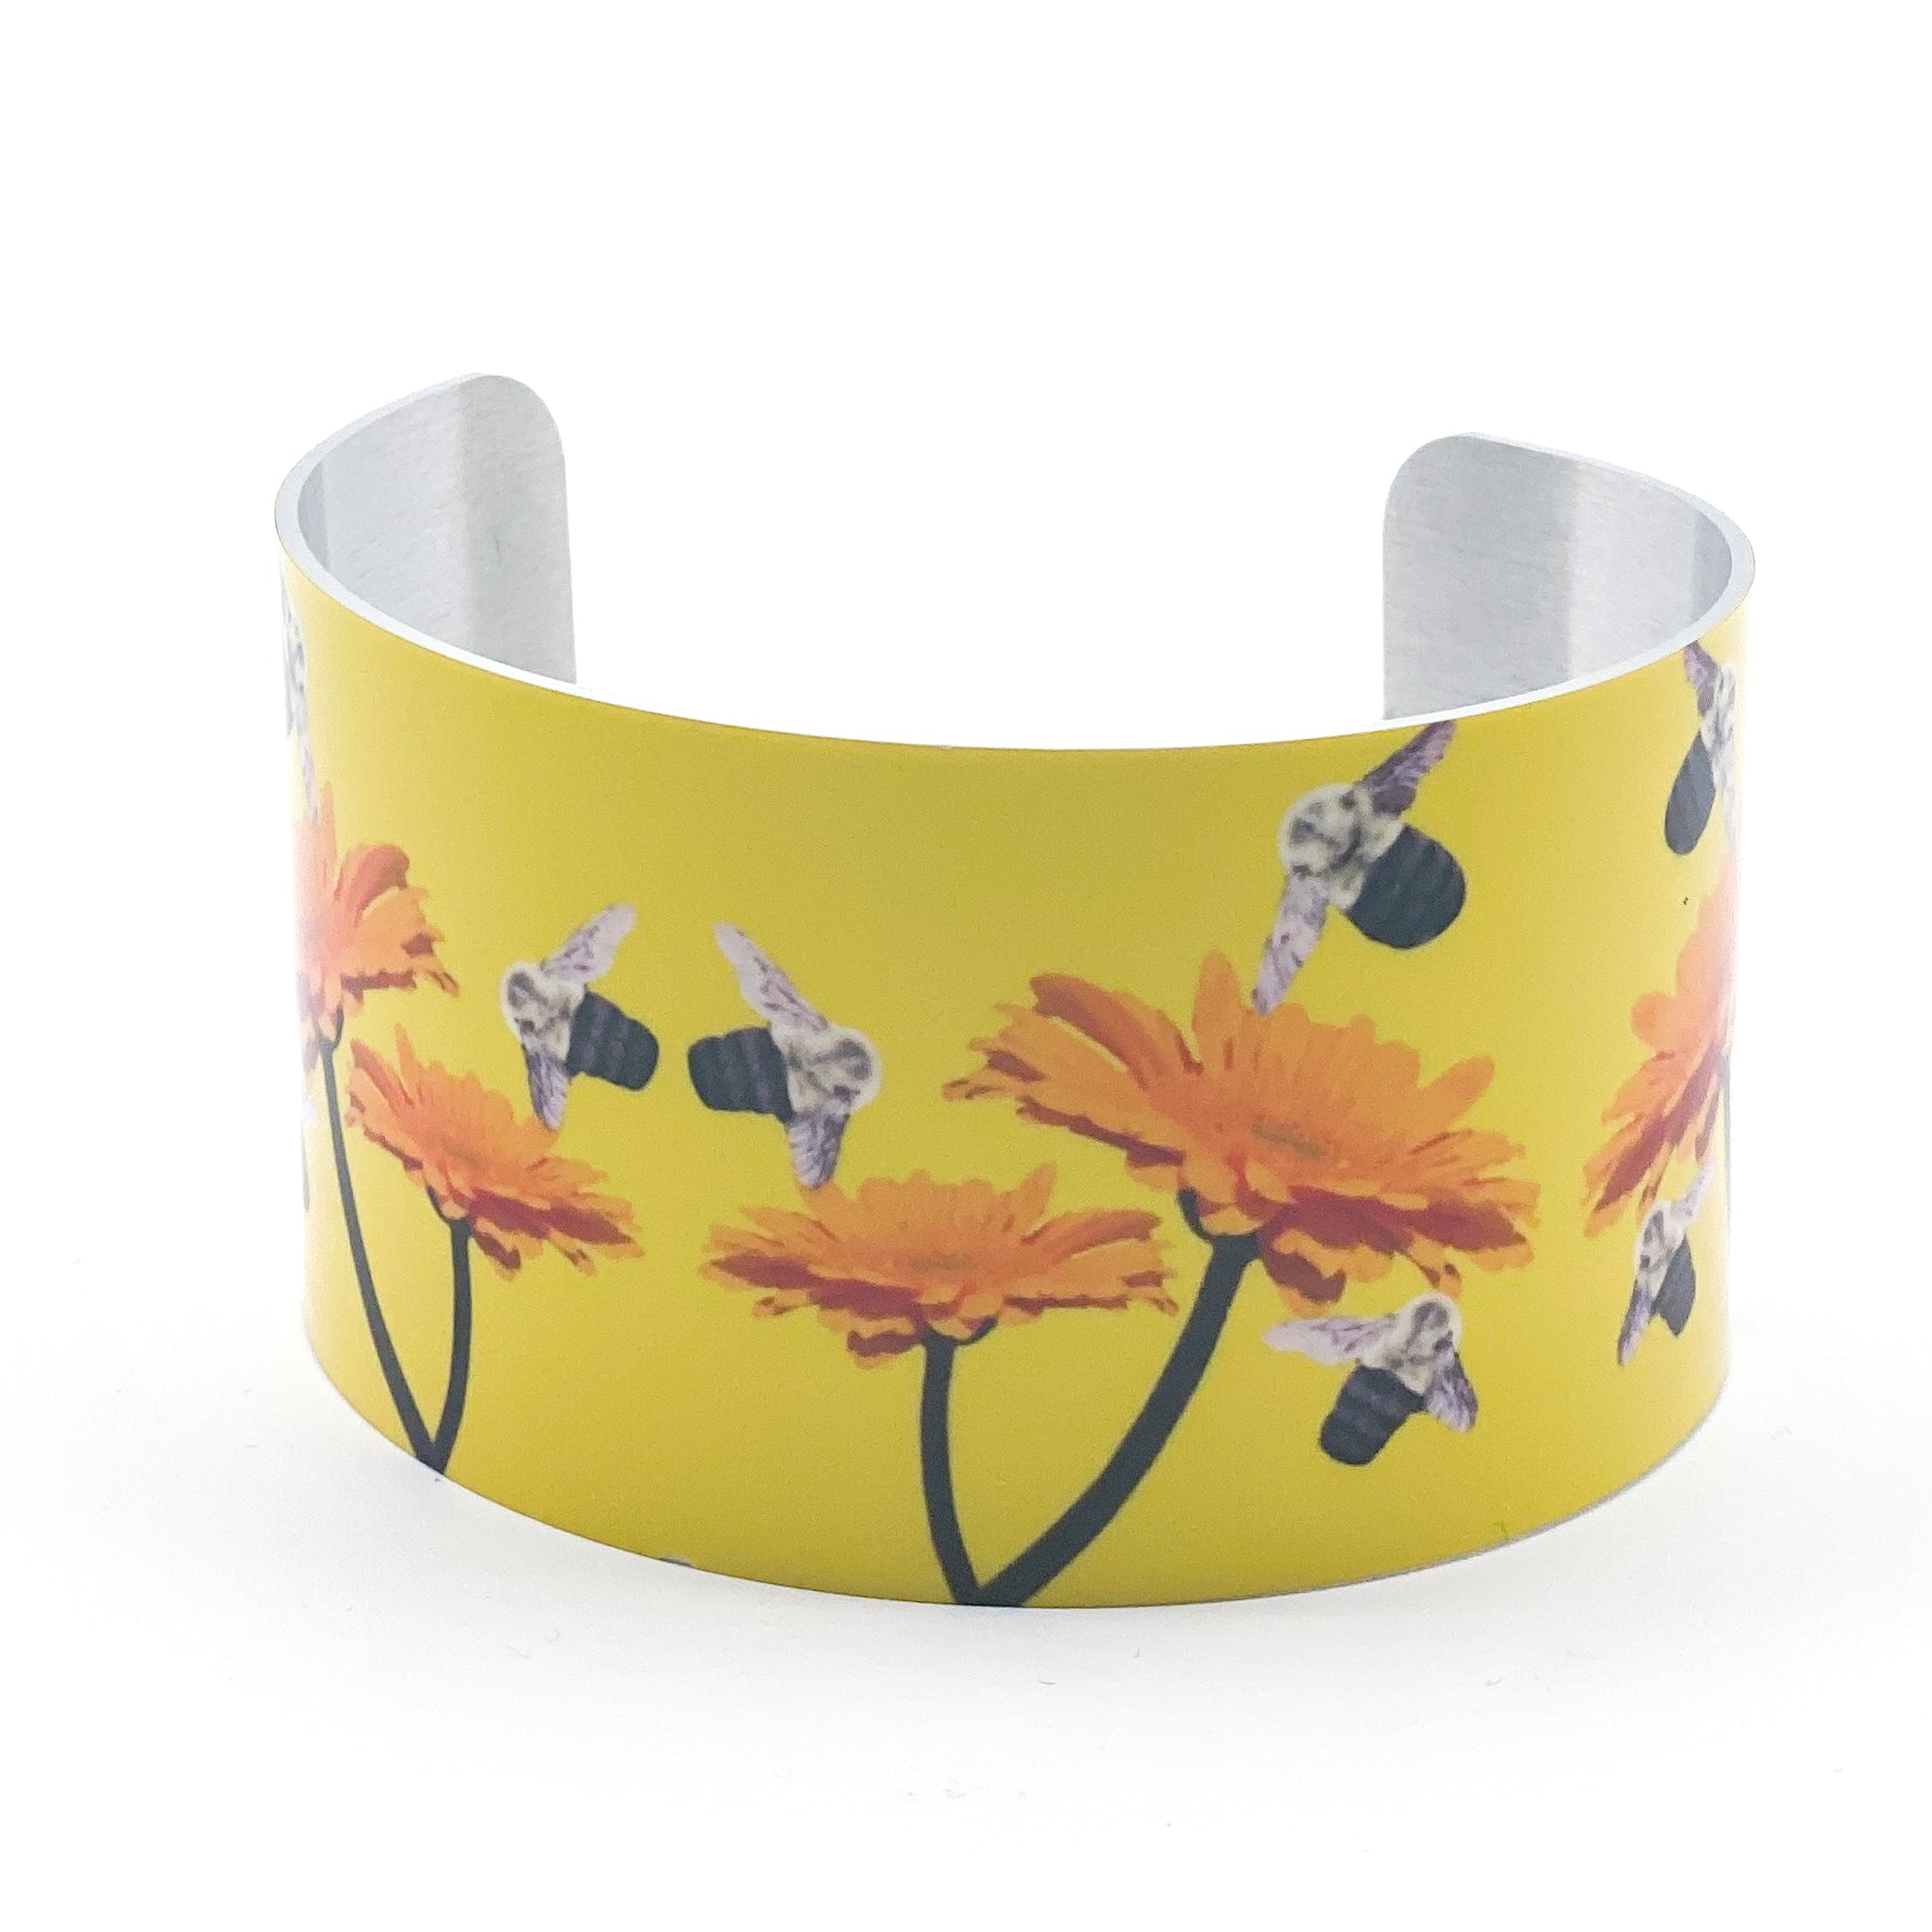 Standard view of Busy Bee Wide Cuff Bracelet | Wear the Wonder